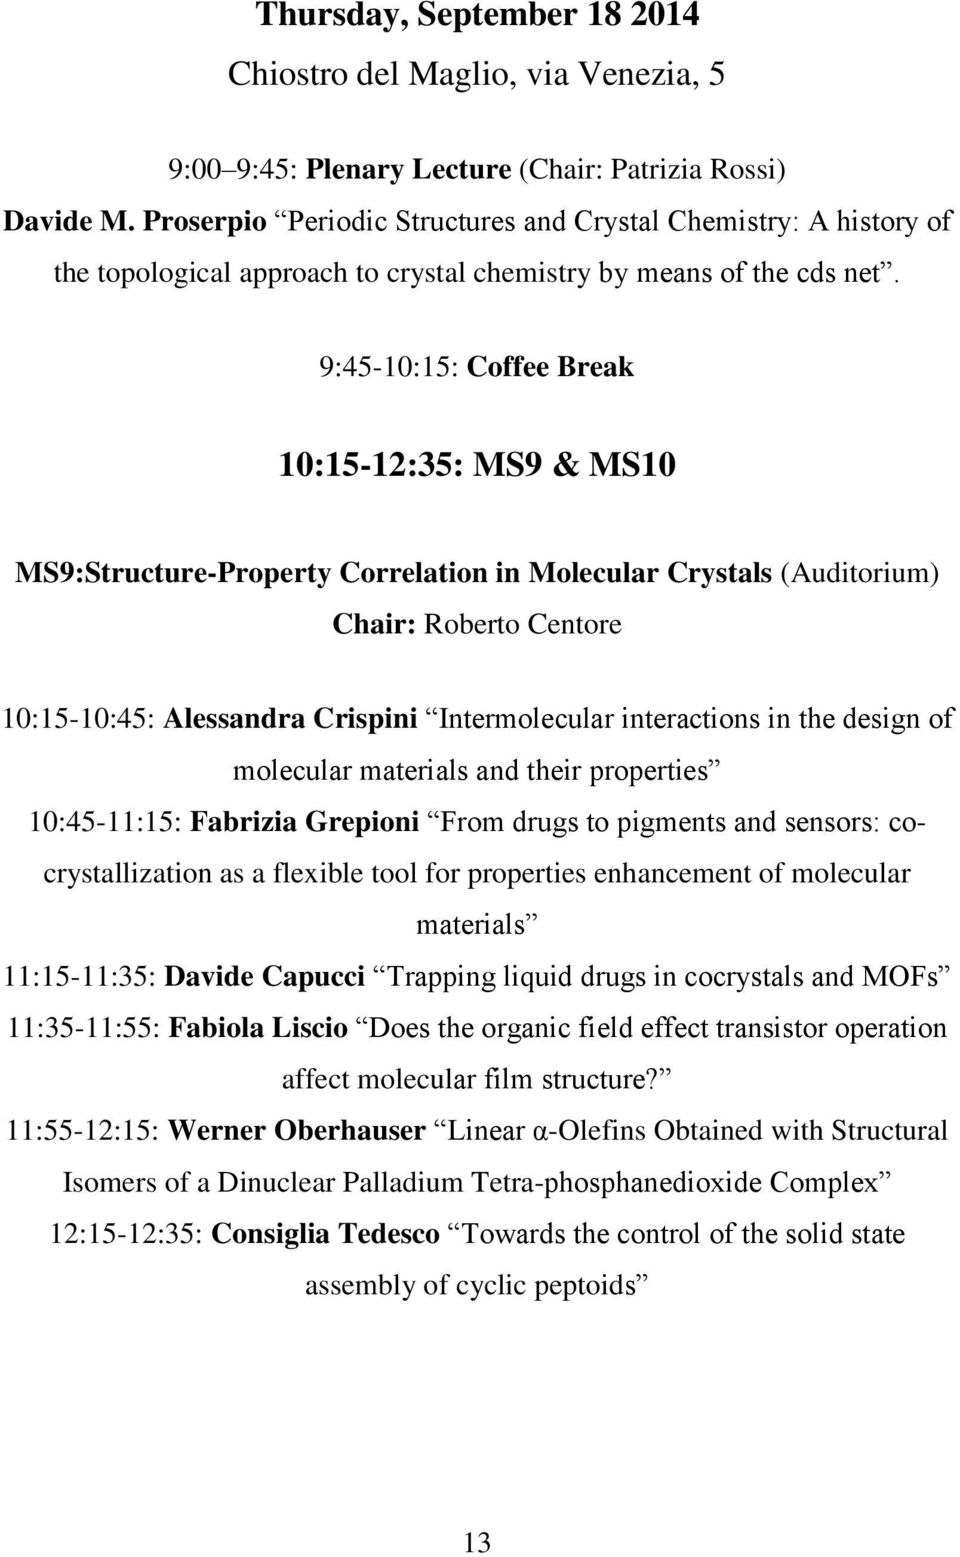 9:45-10:15: Coffee Break 10:15-12:35: MS9 & MS10 MS9:Structure-Property Correlation in Molecular Crystals (Auditorium) Chair: Roberto Centore 10:15-10:45: Alessandra Crispini Intermolecular